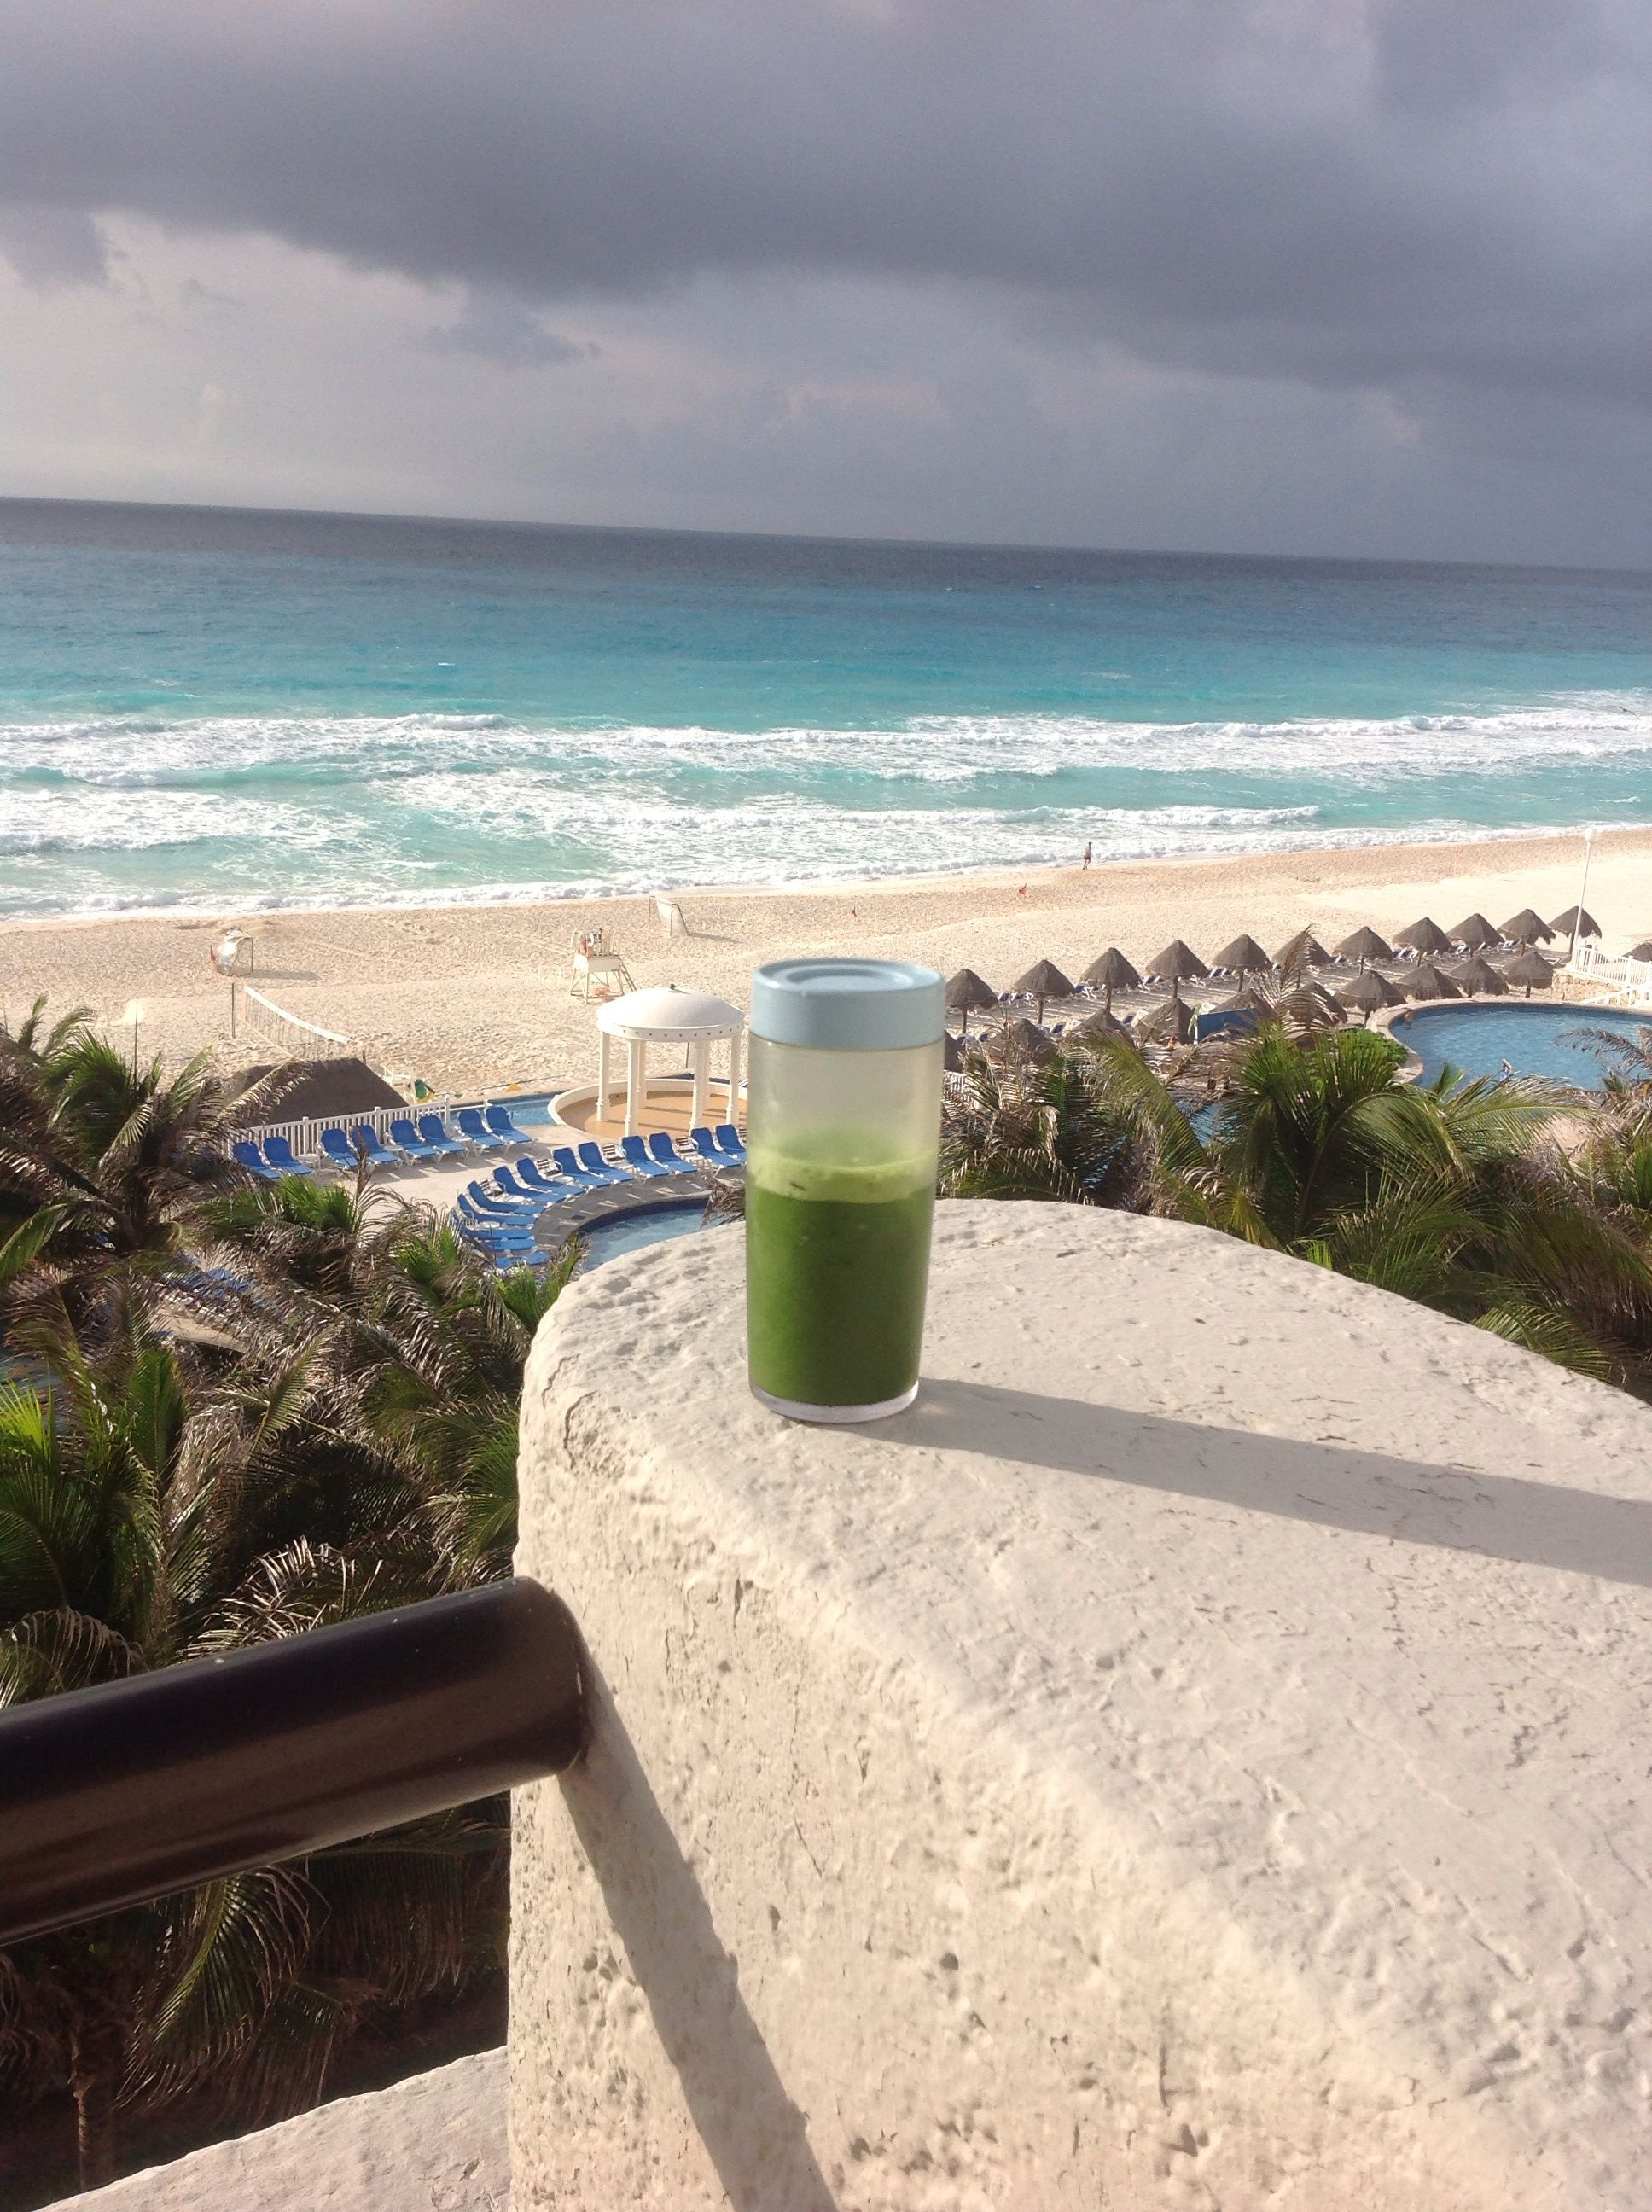 """I call this picture """"Matcha in paradise"""". This is my daily"""